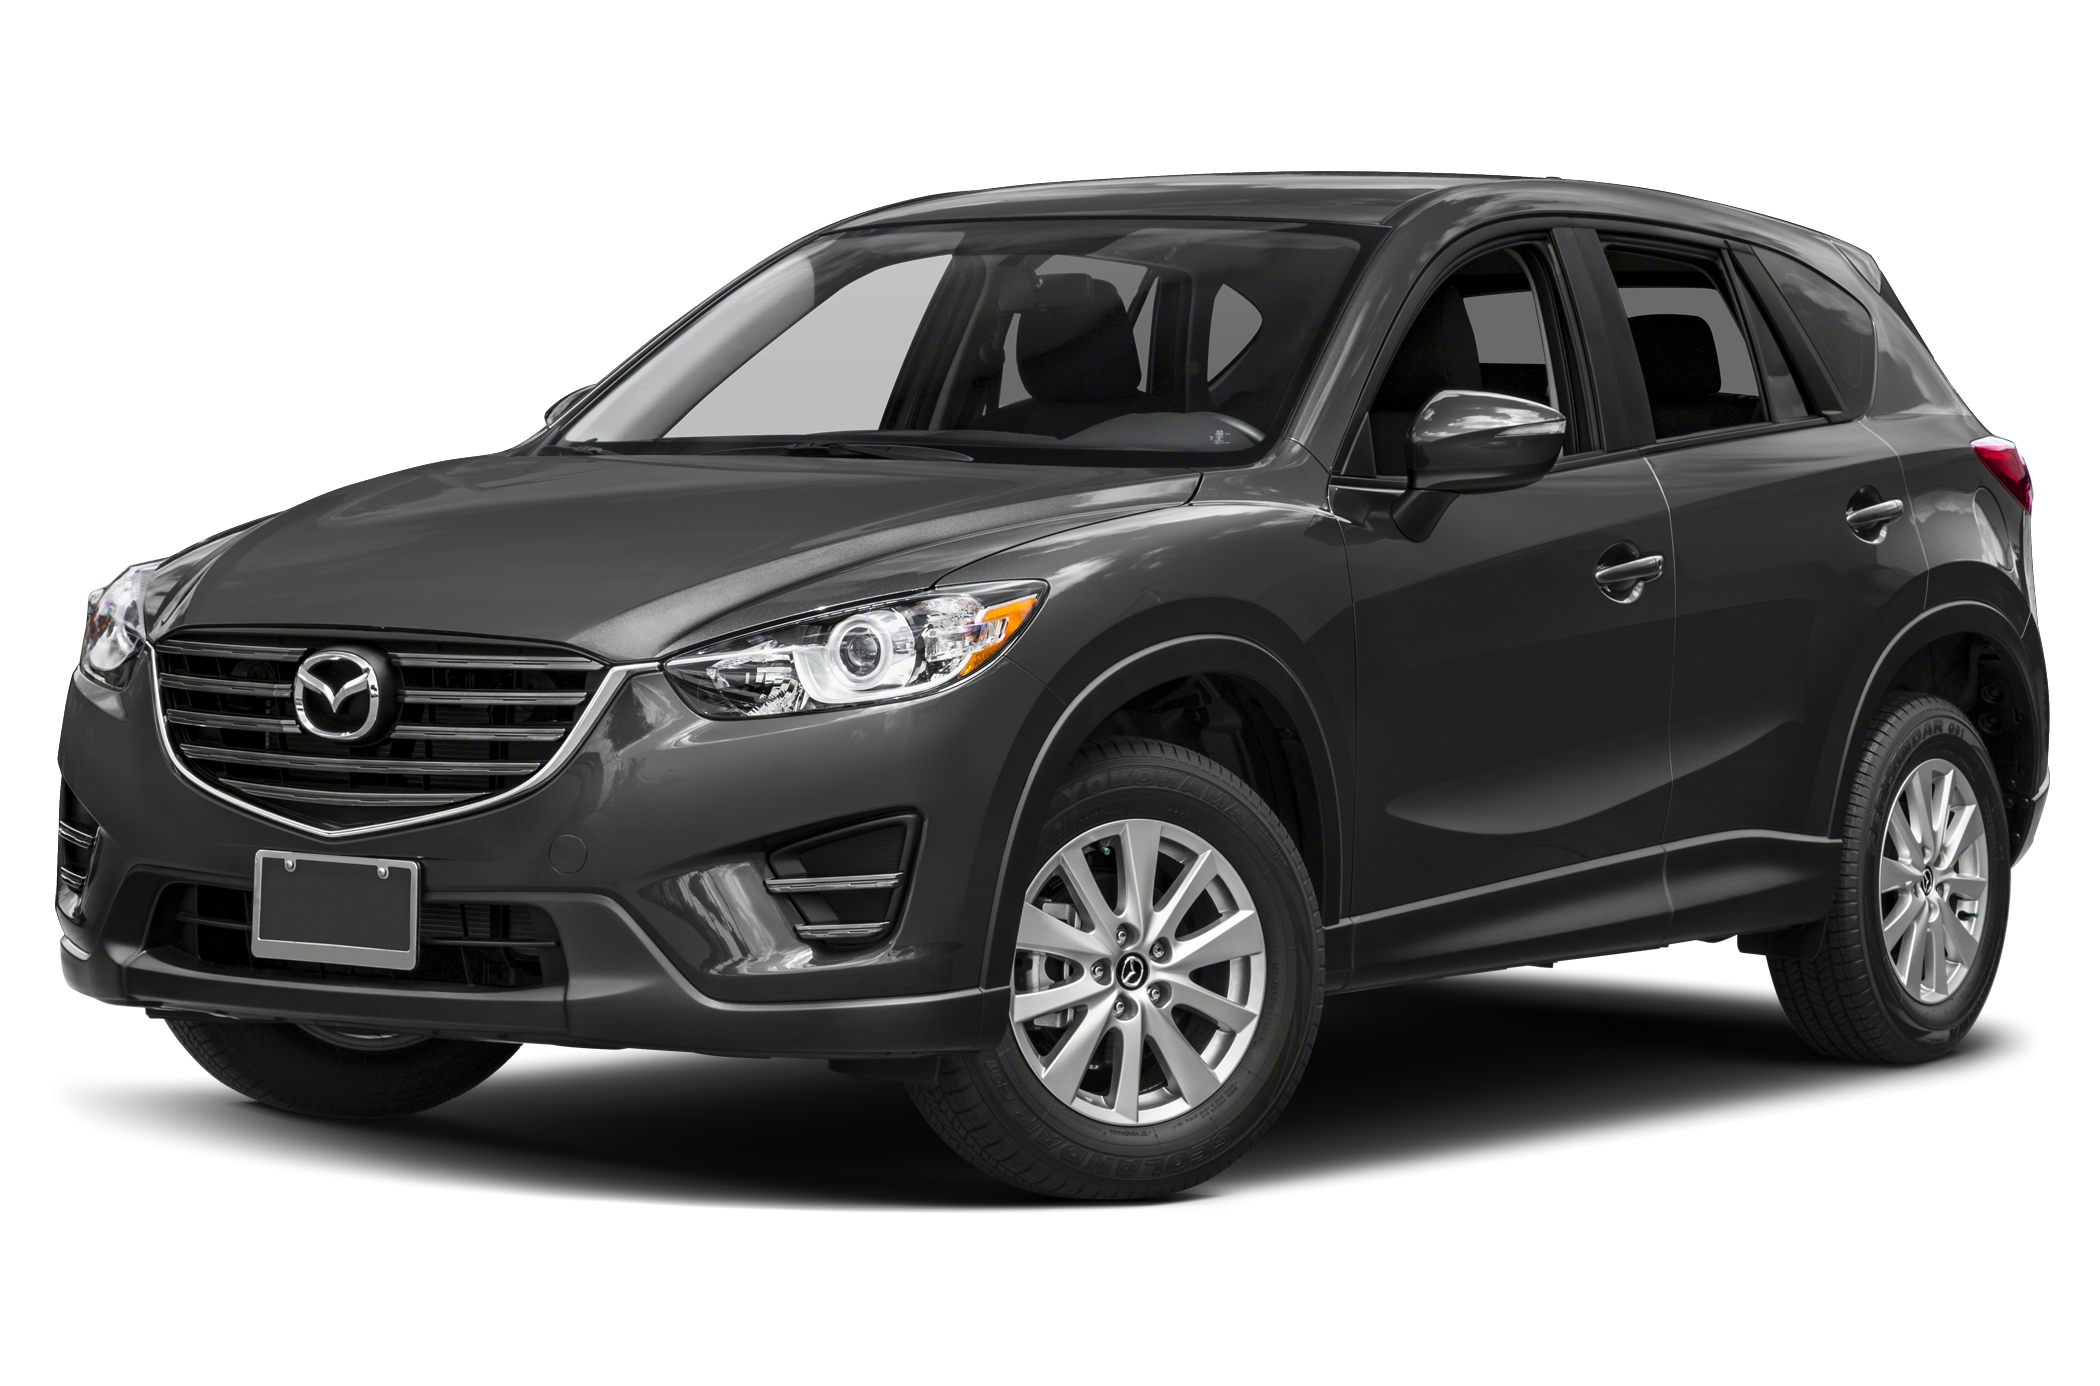 mazda cx 5 news photos and buying information autoblog. Black Bedroom Furniture Sets. Home Design Ideas